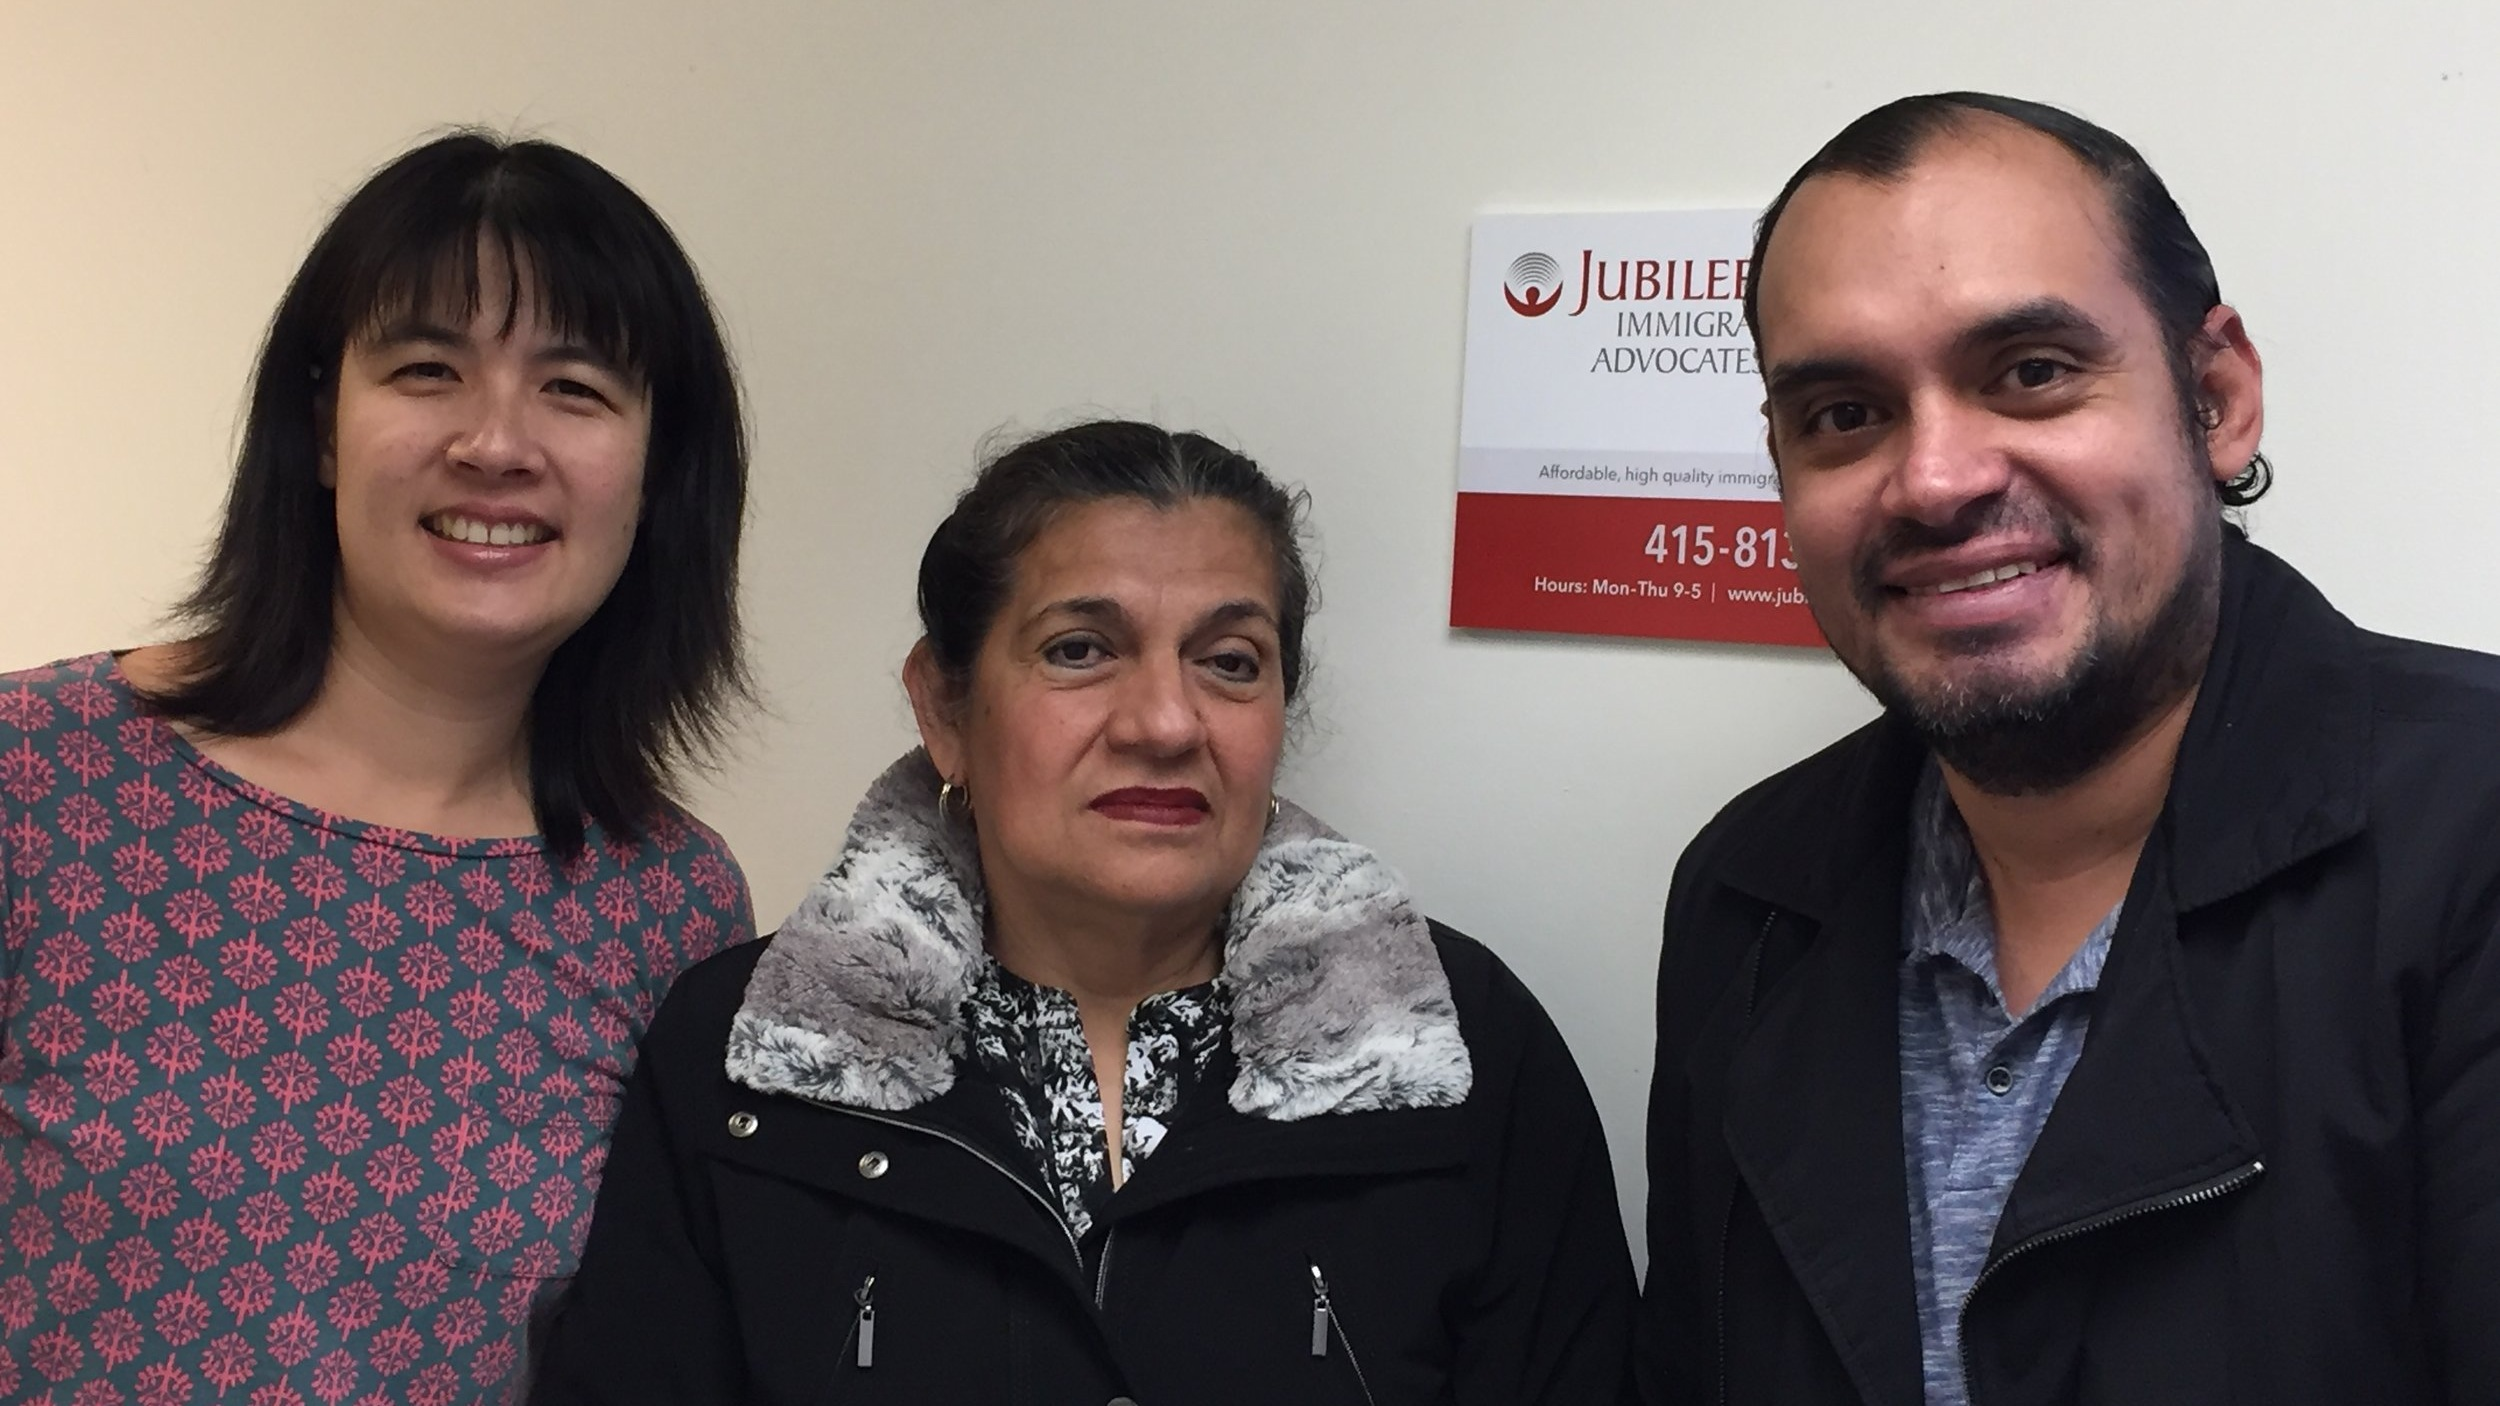 Immigration Law Services | Jubilee Immigration Advocates